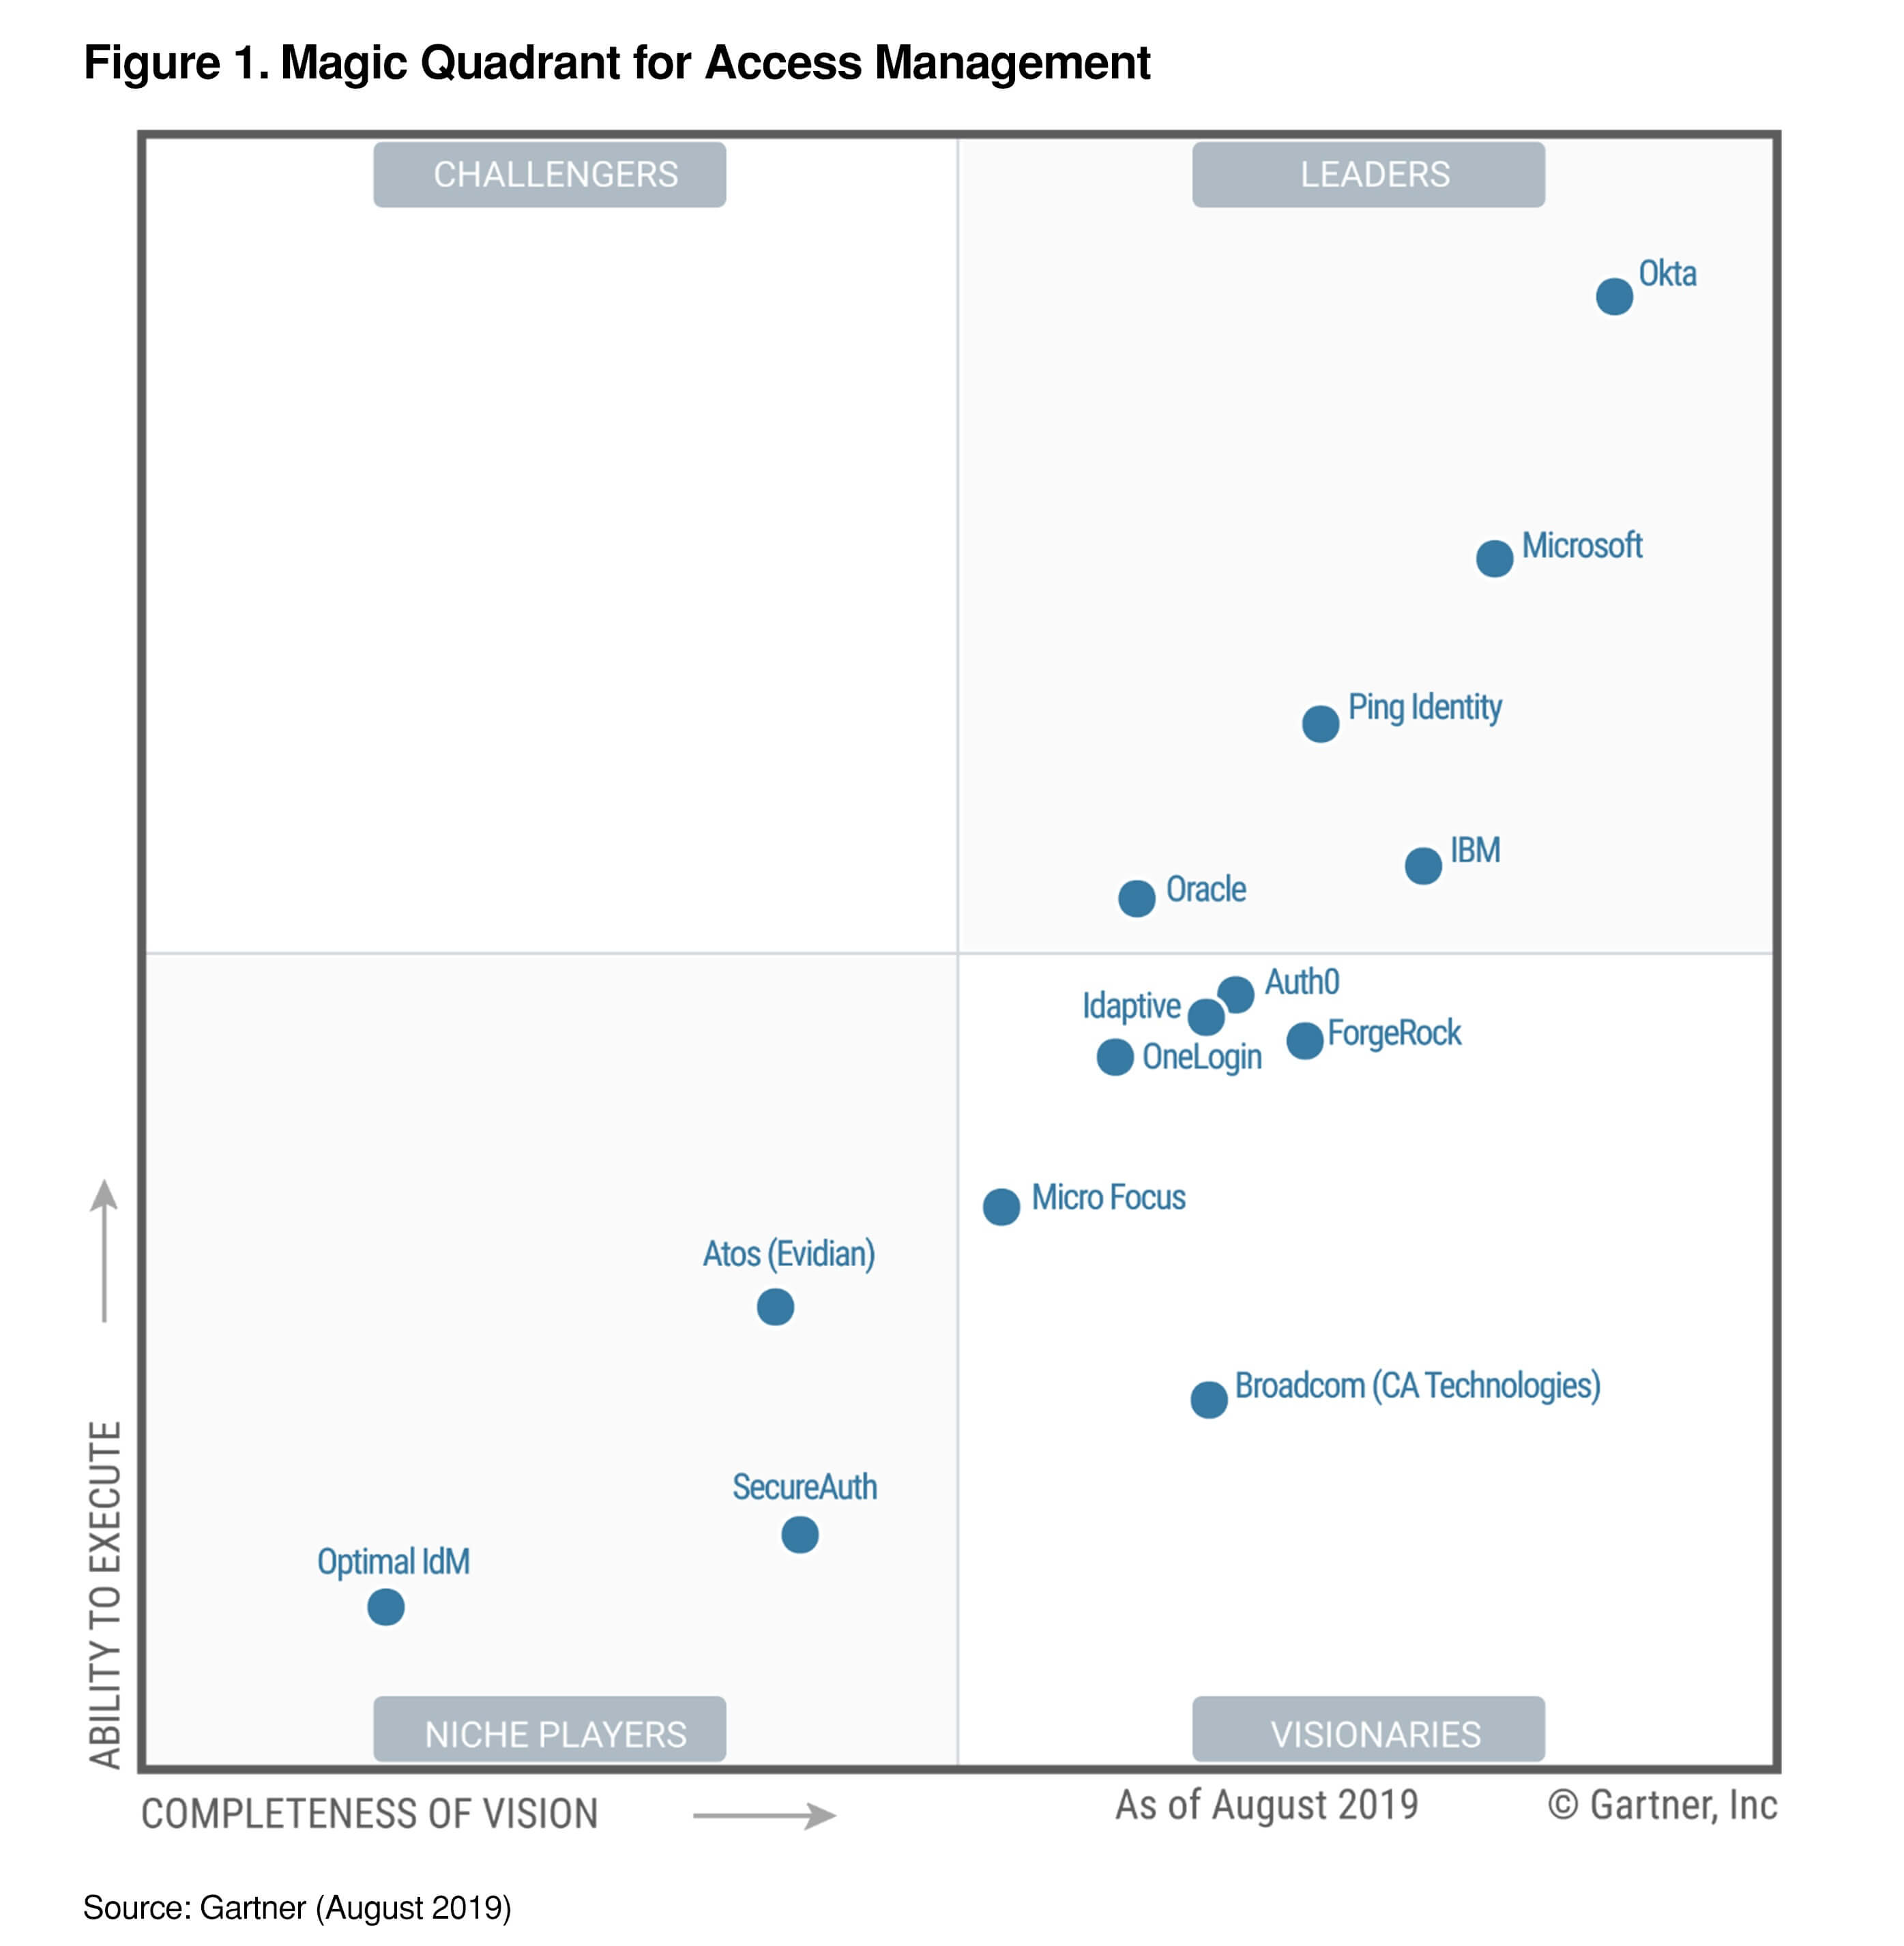 Okta Leader Gartner Magic Quadrant Access Management 2019